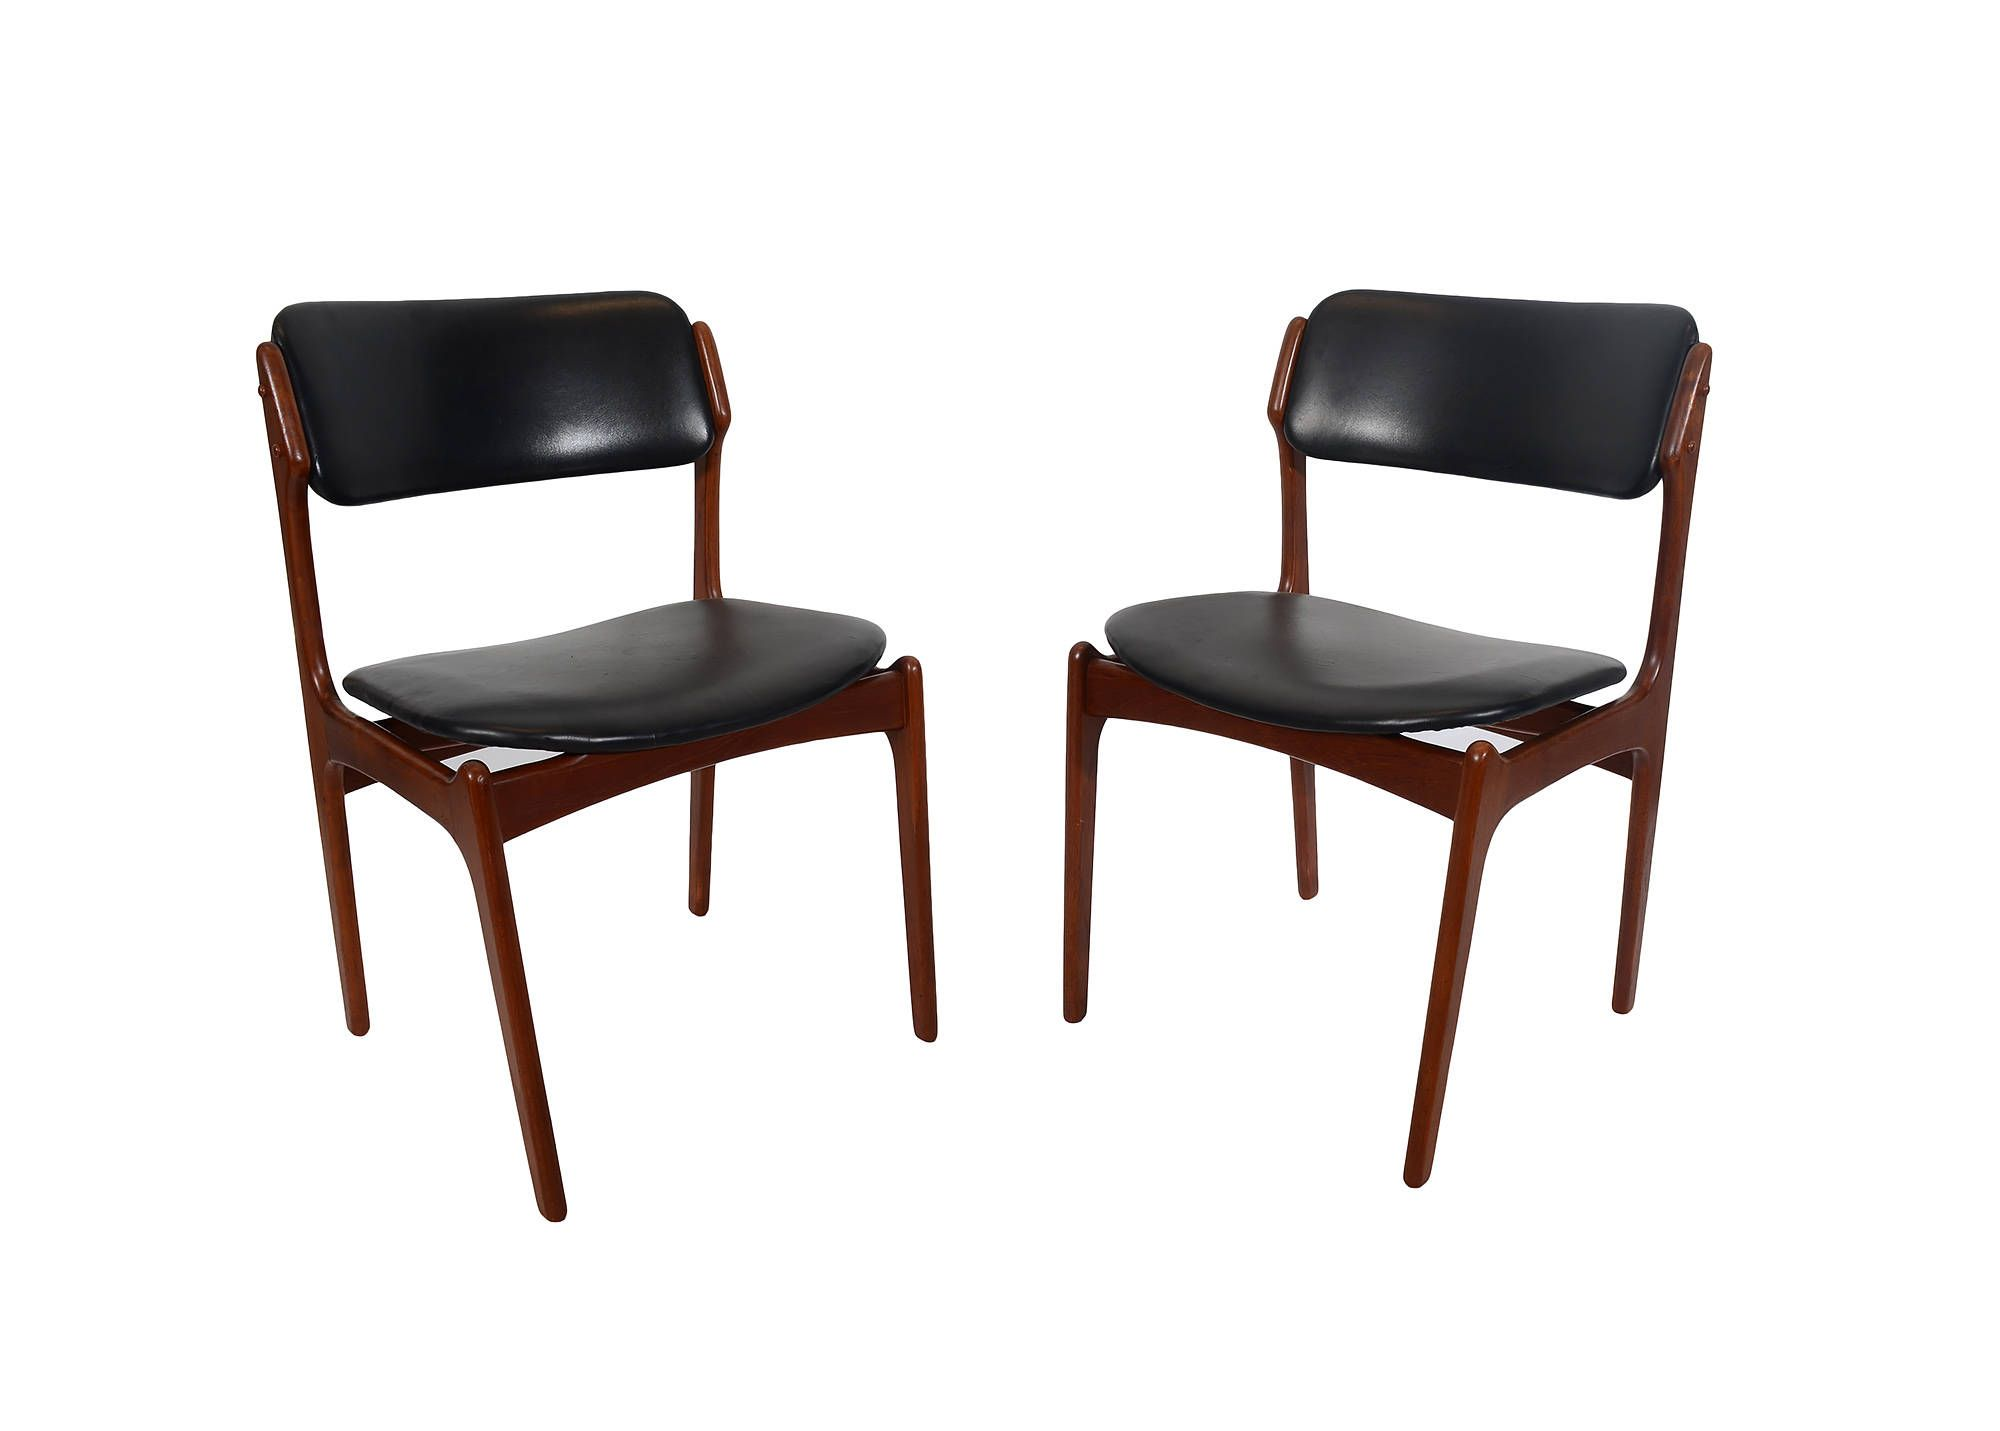 Unique Modern Upholstered Dining Room Chairs